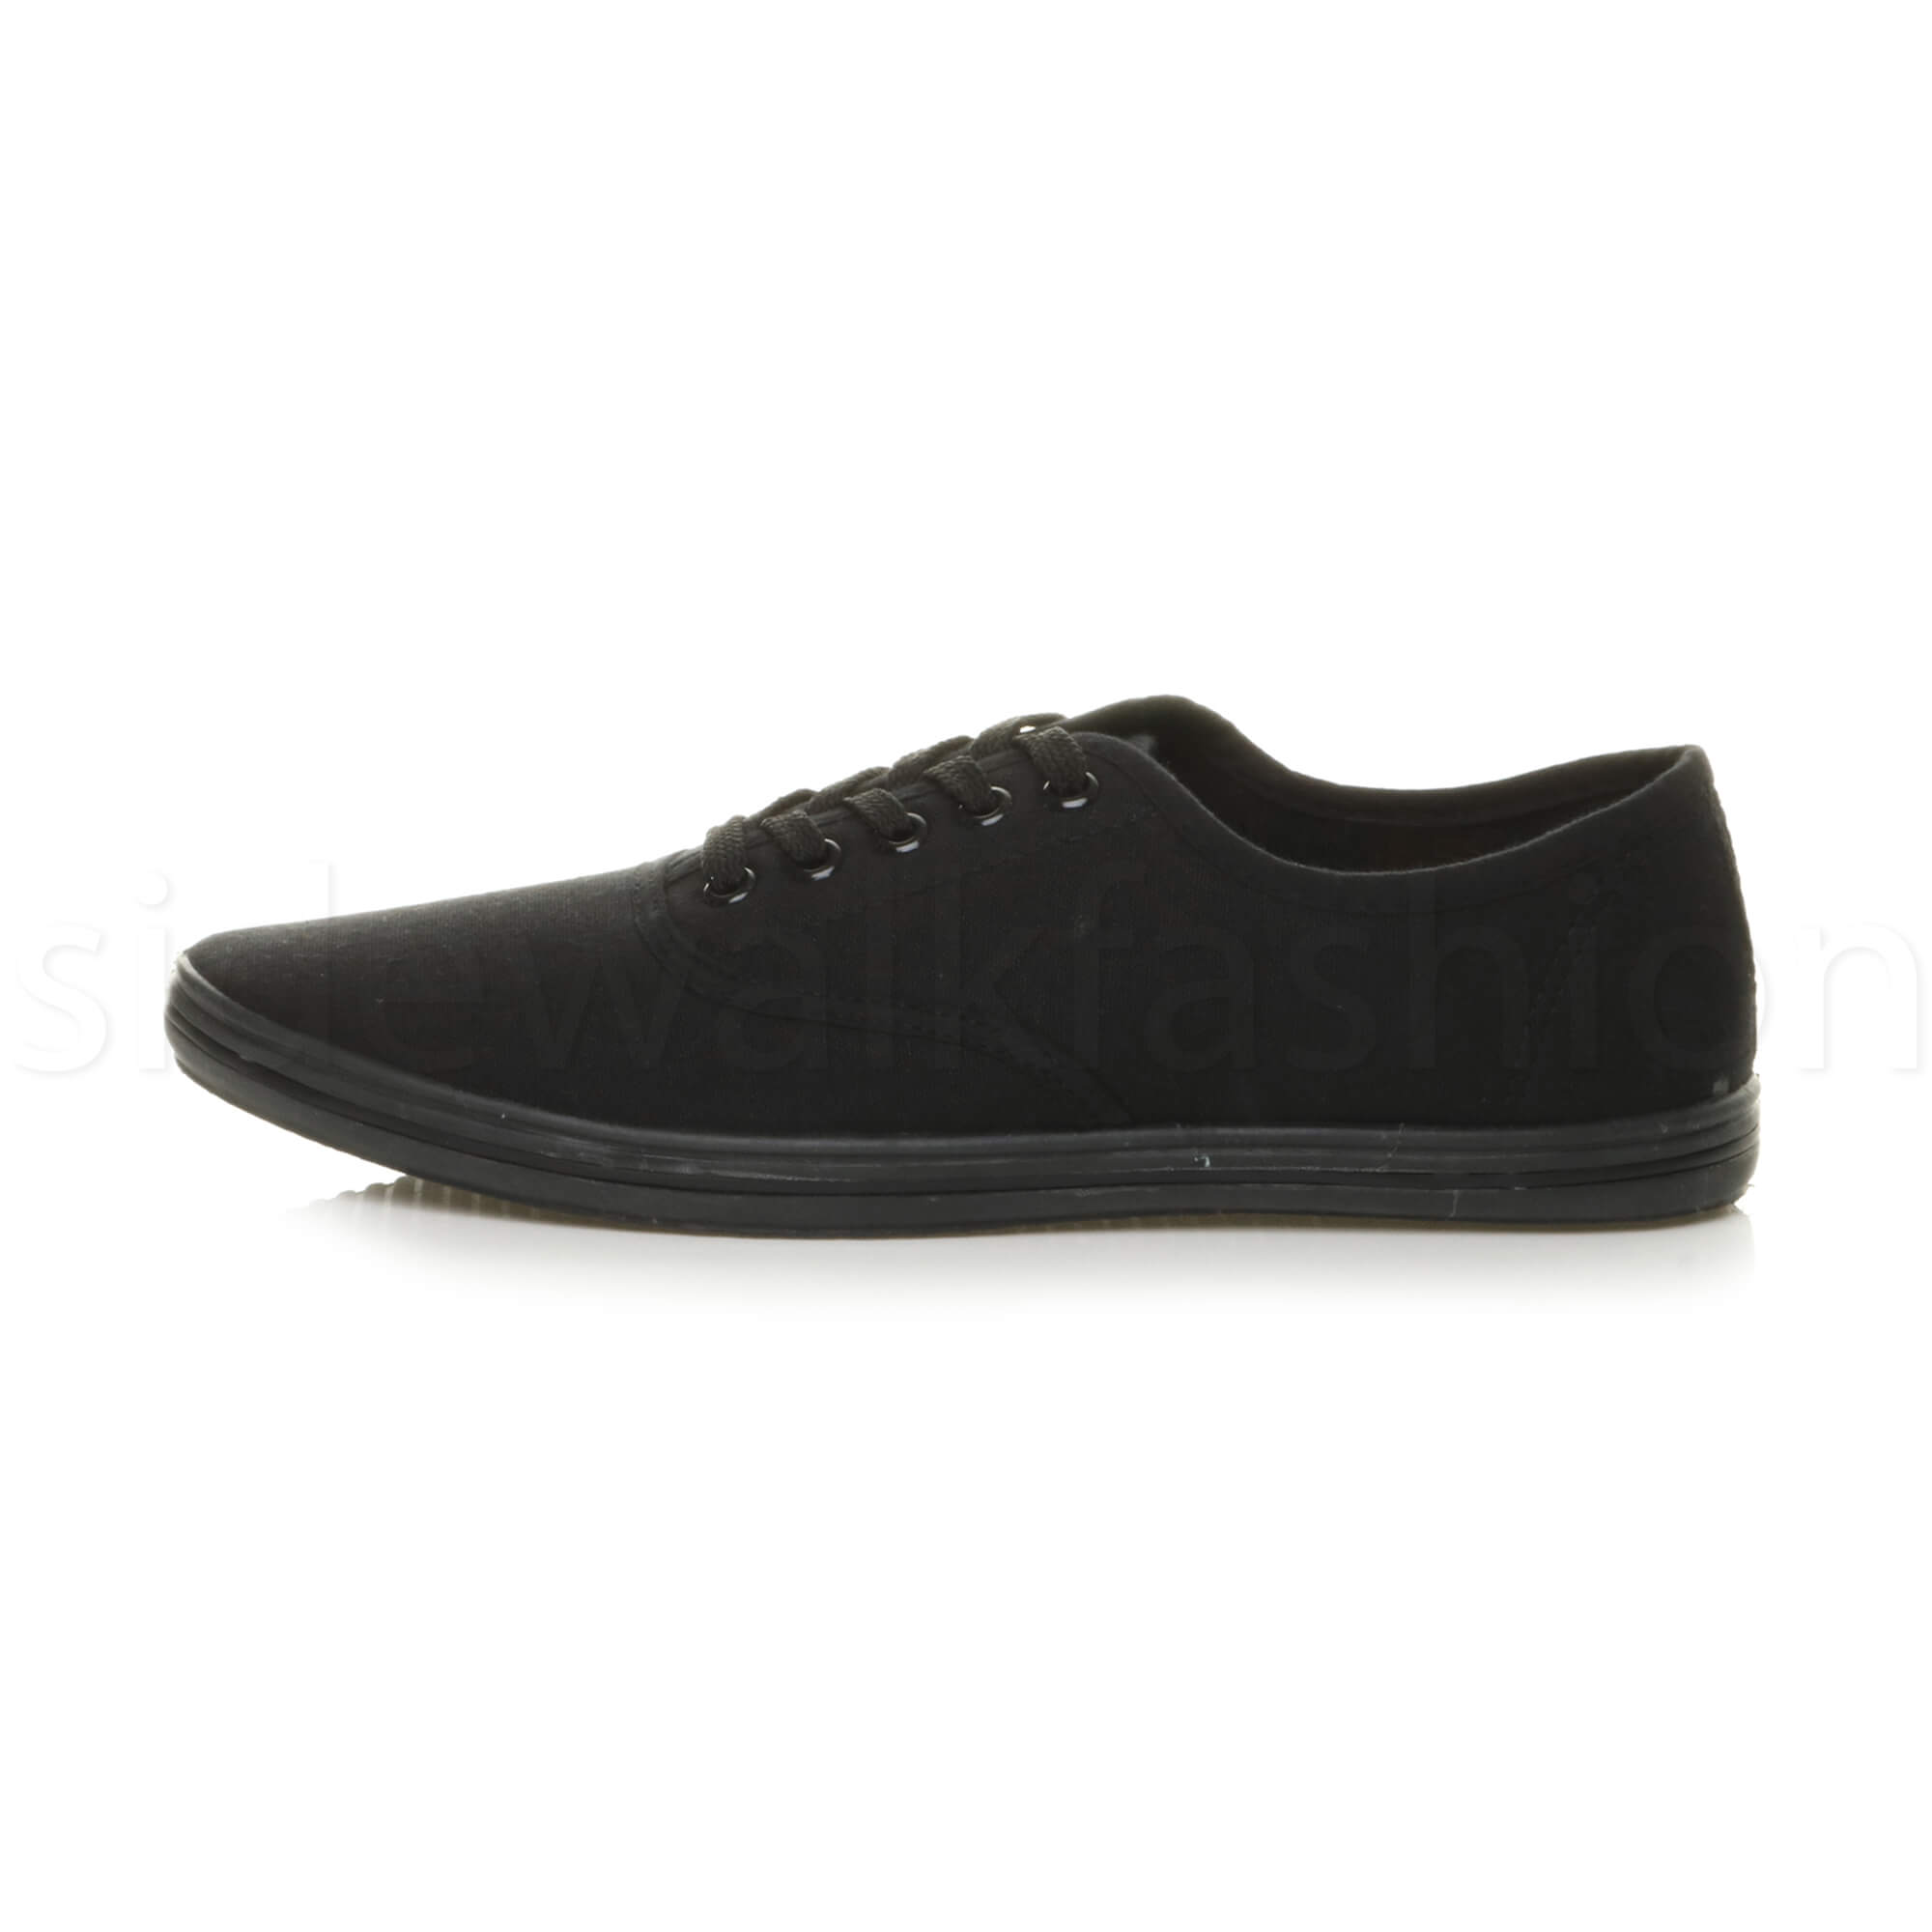 Mens-canvas-trainers-plimsoles-plimsolls-shoes-lace-up-pumps-size thumbnail 3